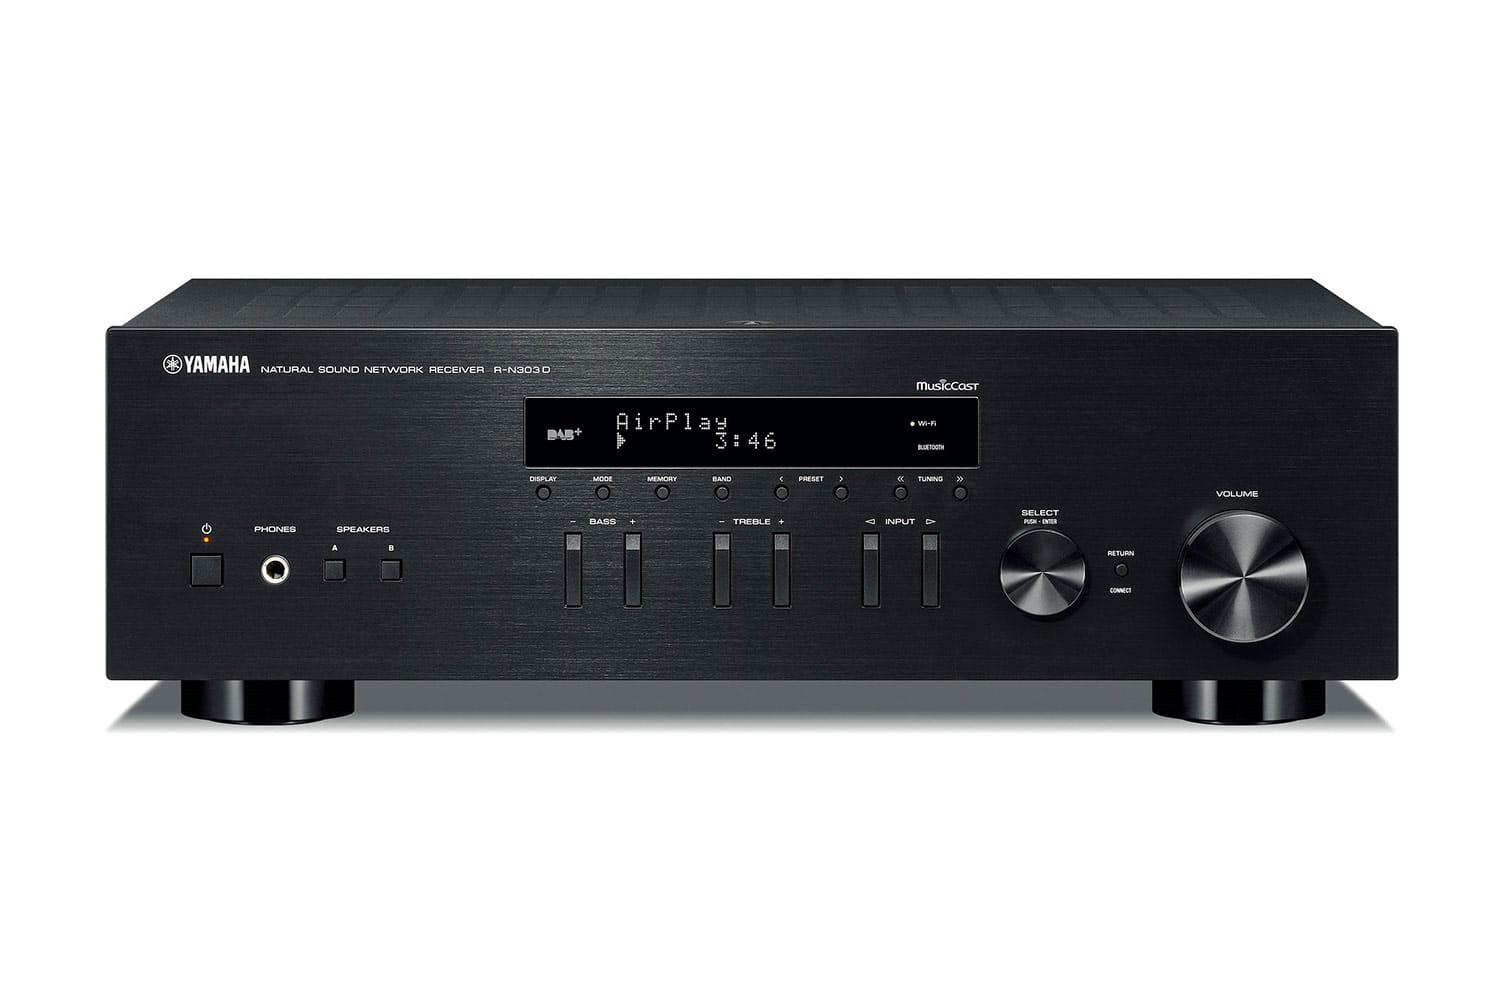 yamaha r n303d netzwerk receiver. Black Bedroom Furniture Sets. Home Design Ideas